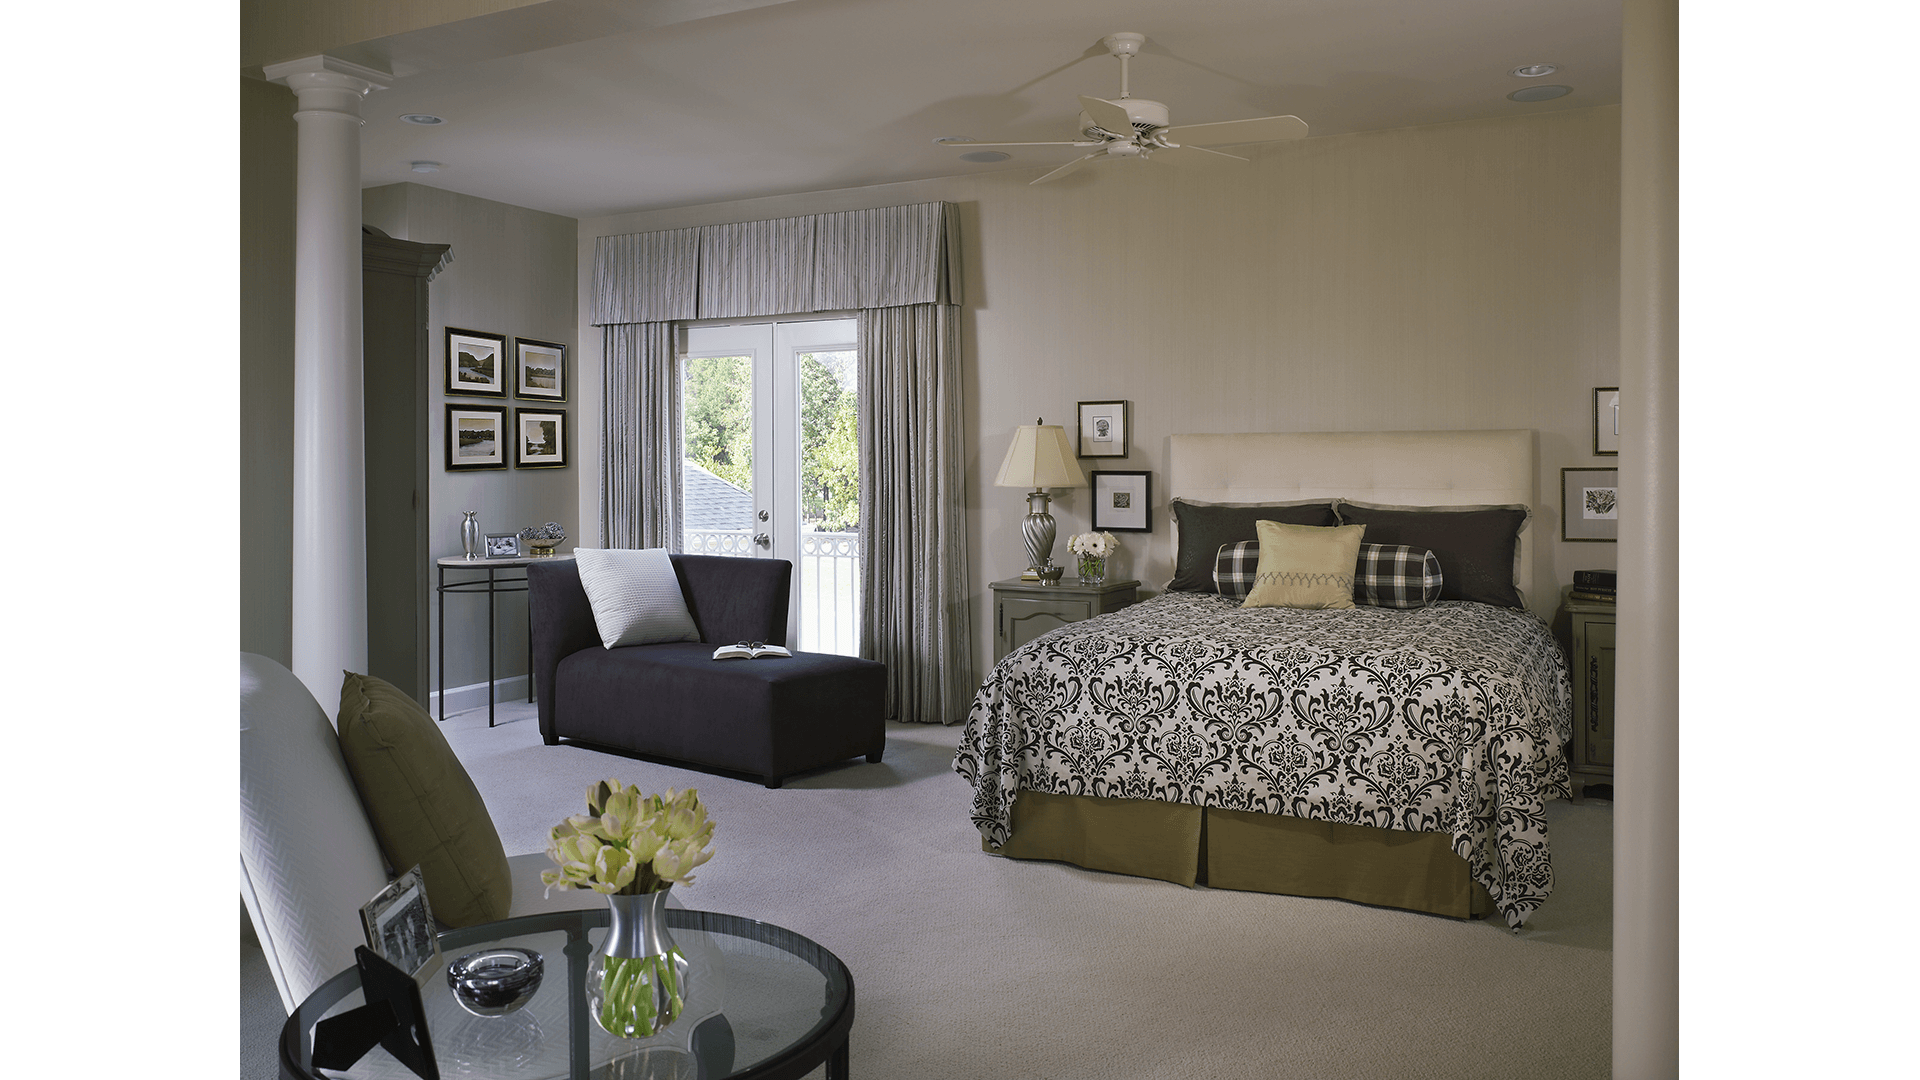 The Owner's Bedroom in the Townsend model in Brambleton. Some options shown.